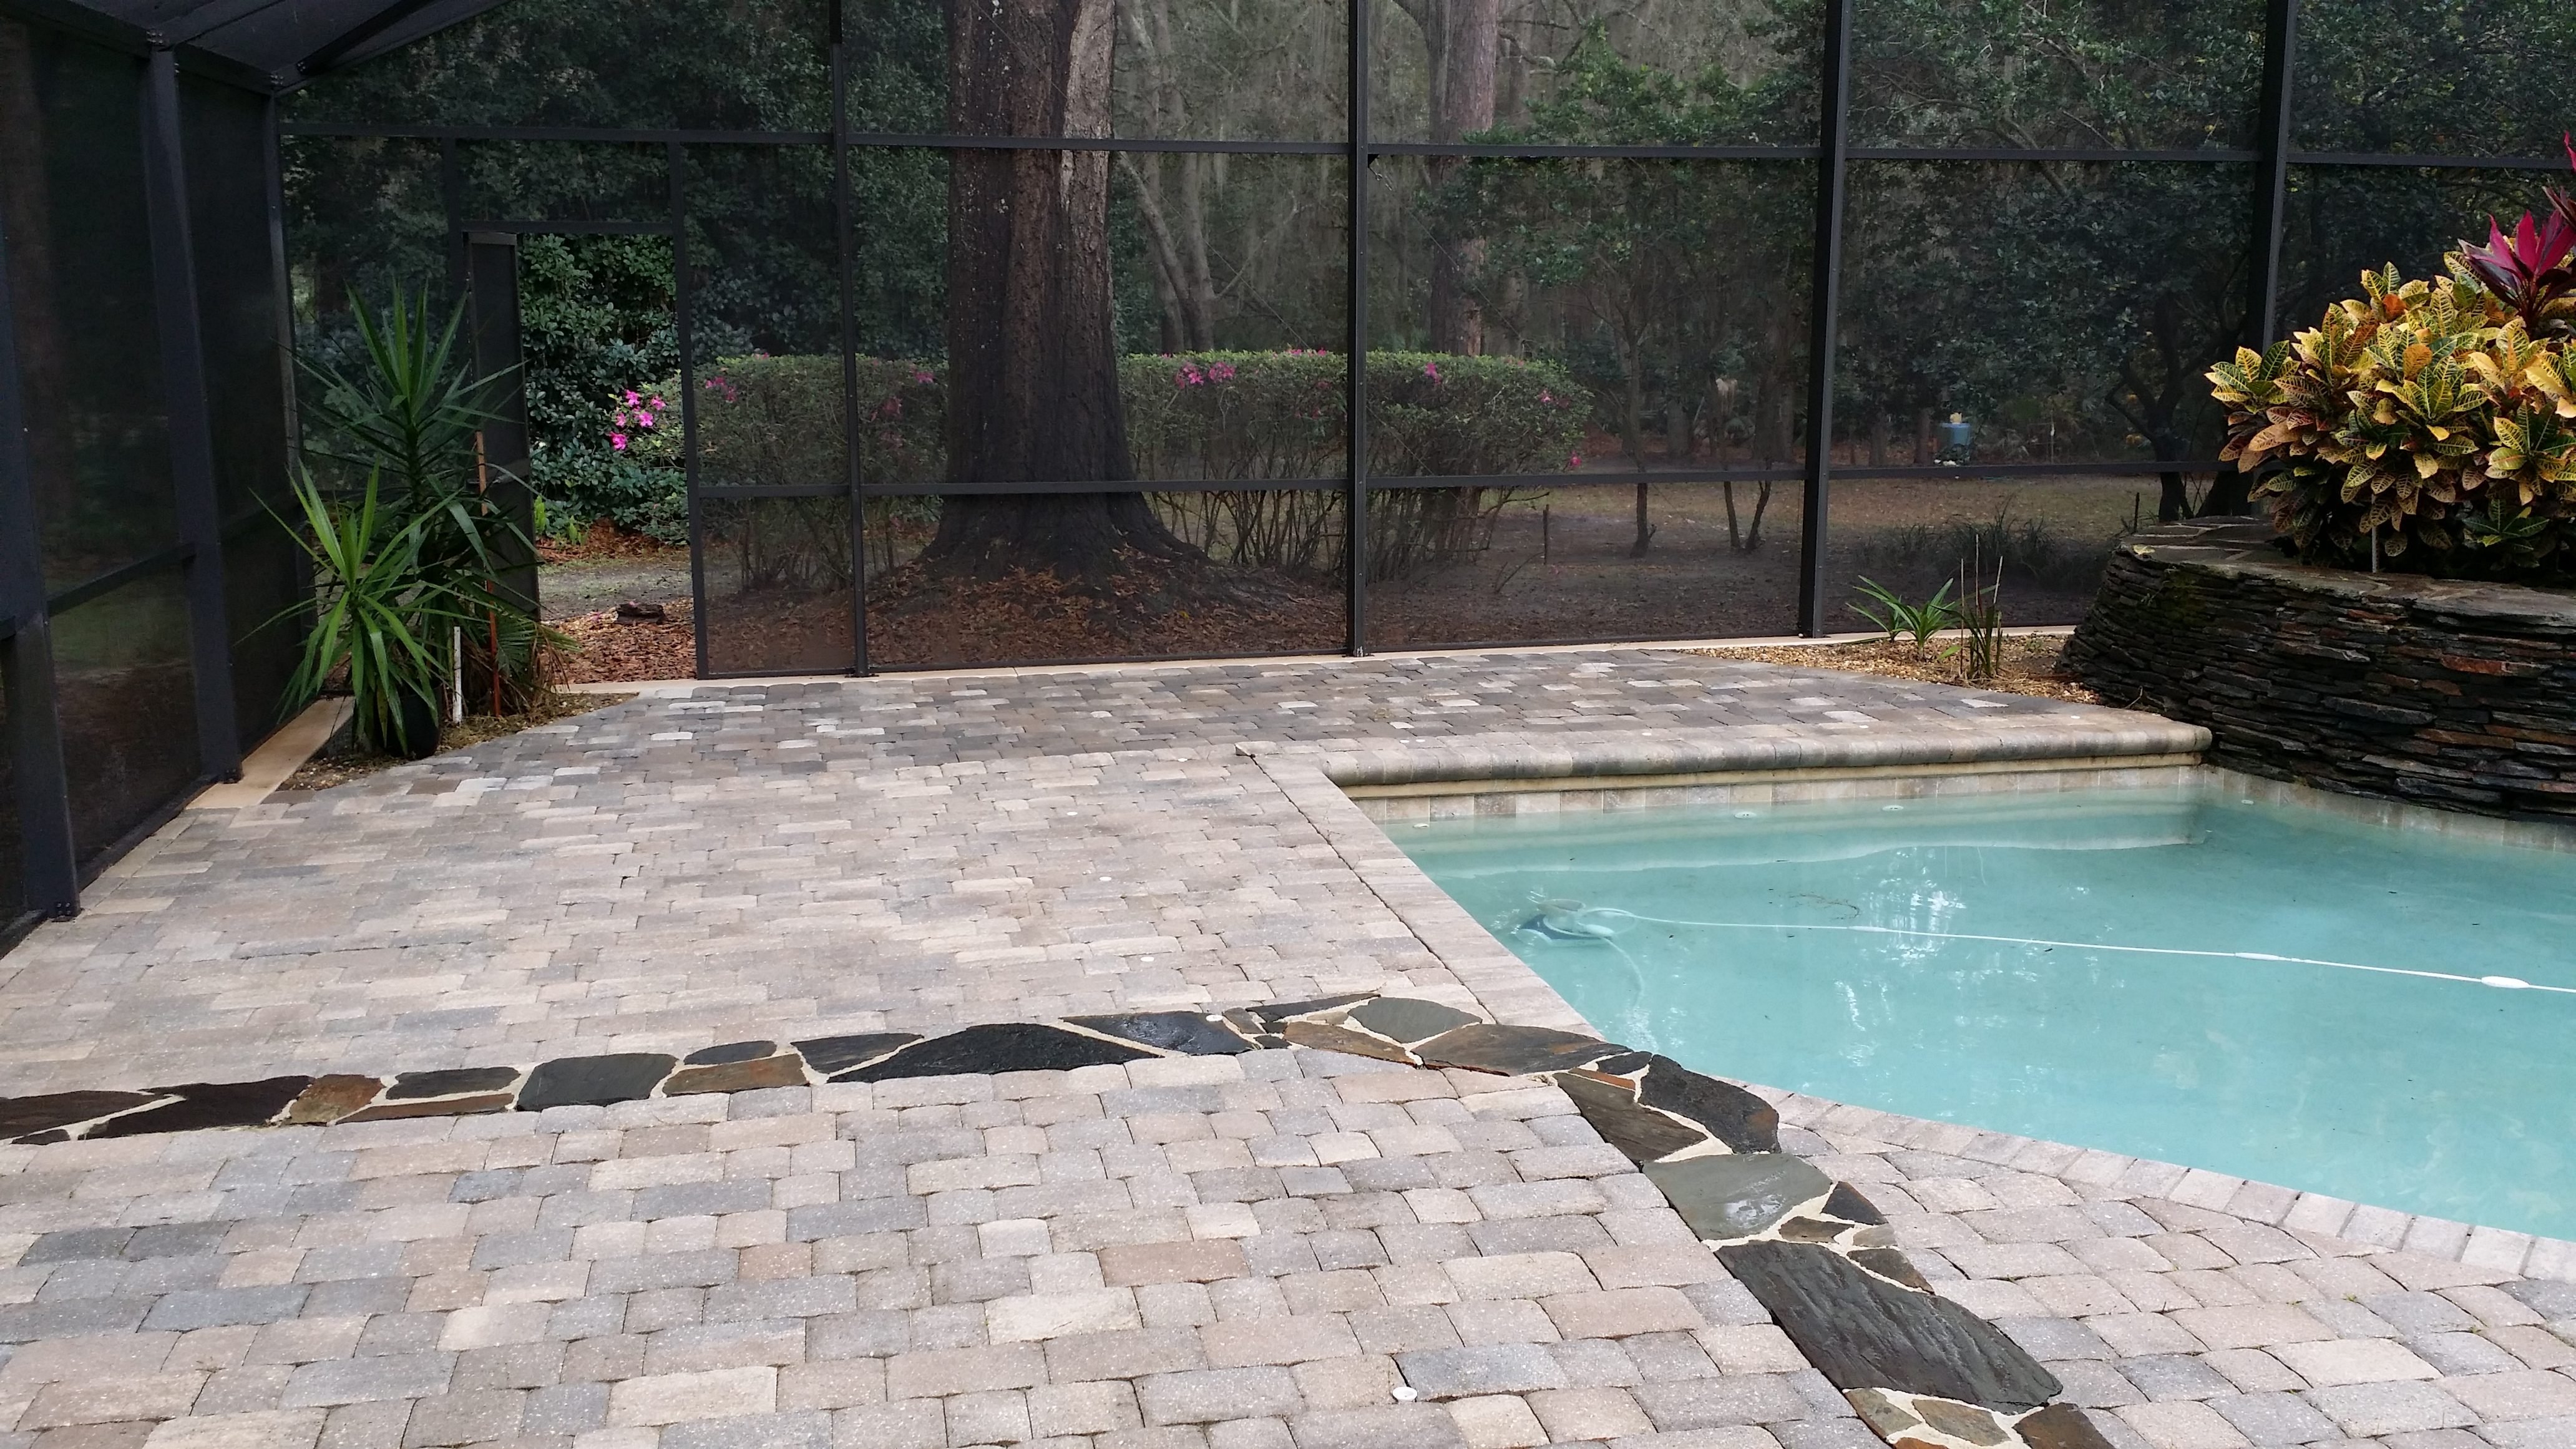 Pool Deck Amp Enclosure Cleaning 3lm Roof Cleaning Orlando